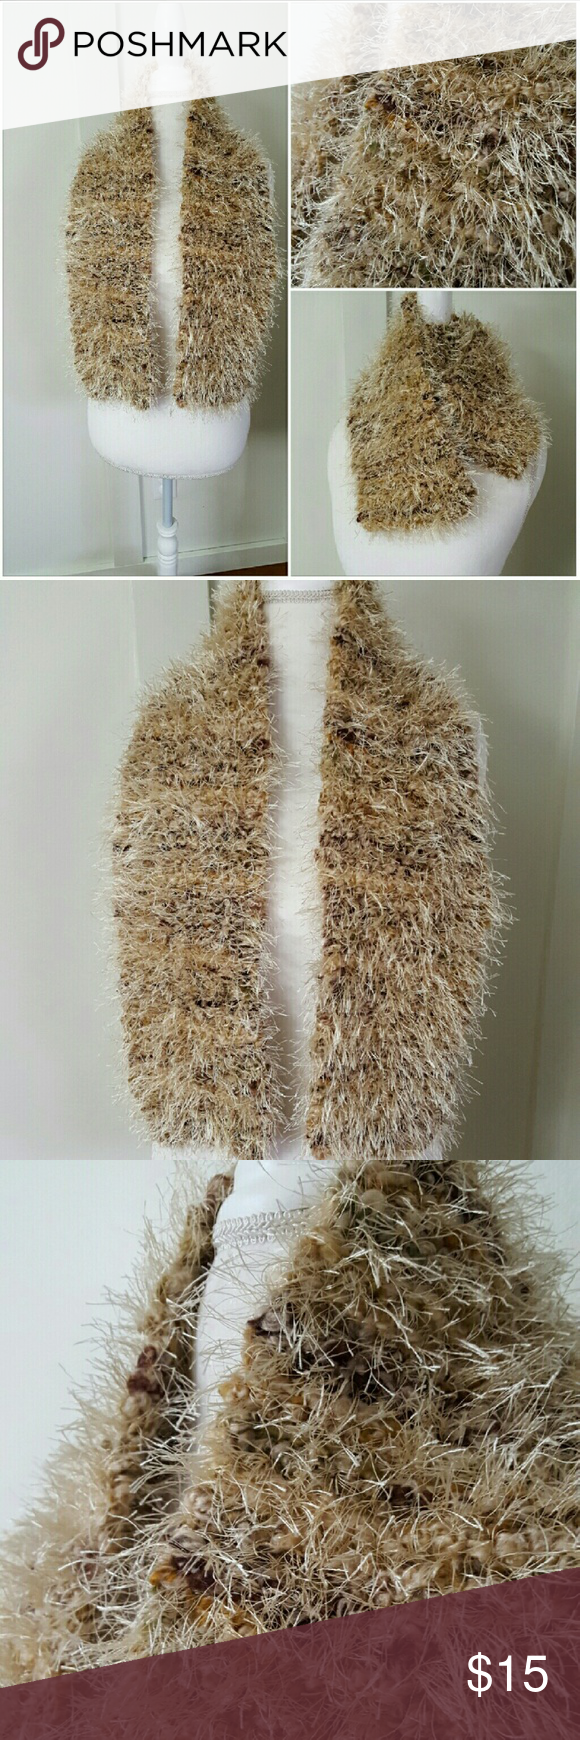 Beige and brown fuzzy scarf | Scarf wrap, Accessories and Brown